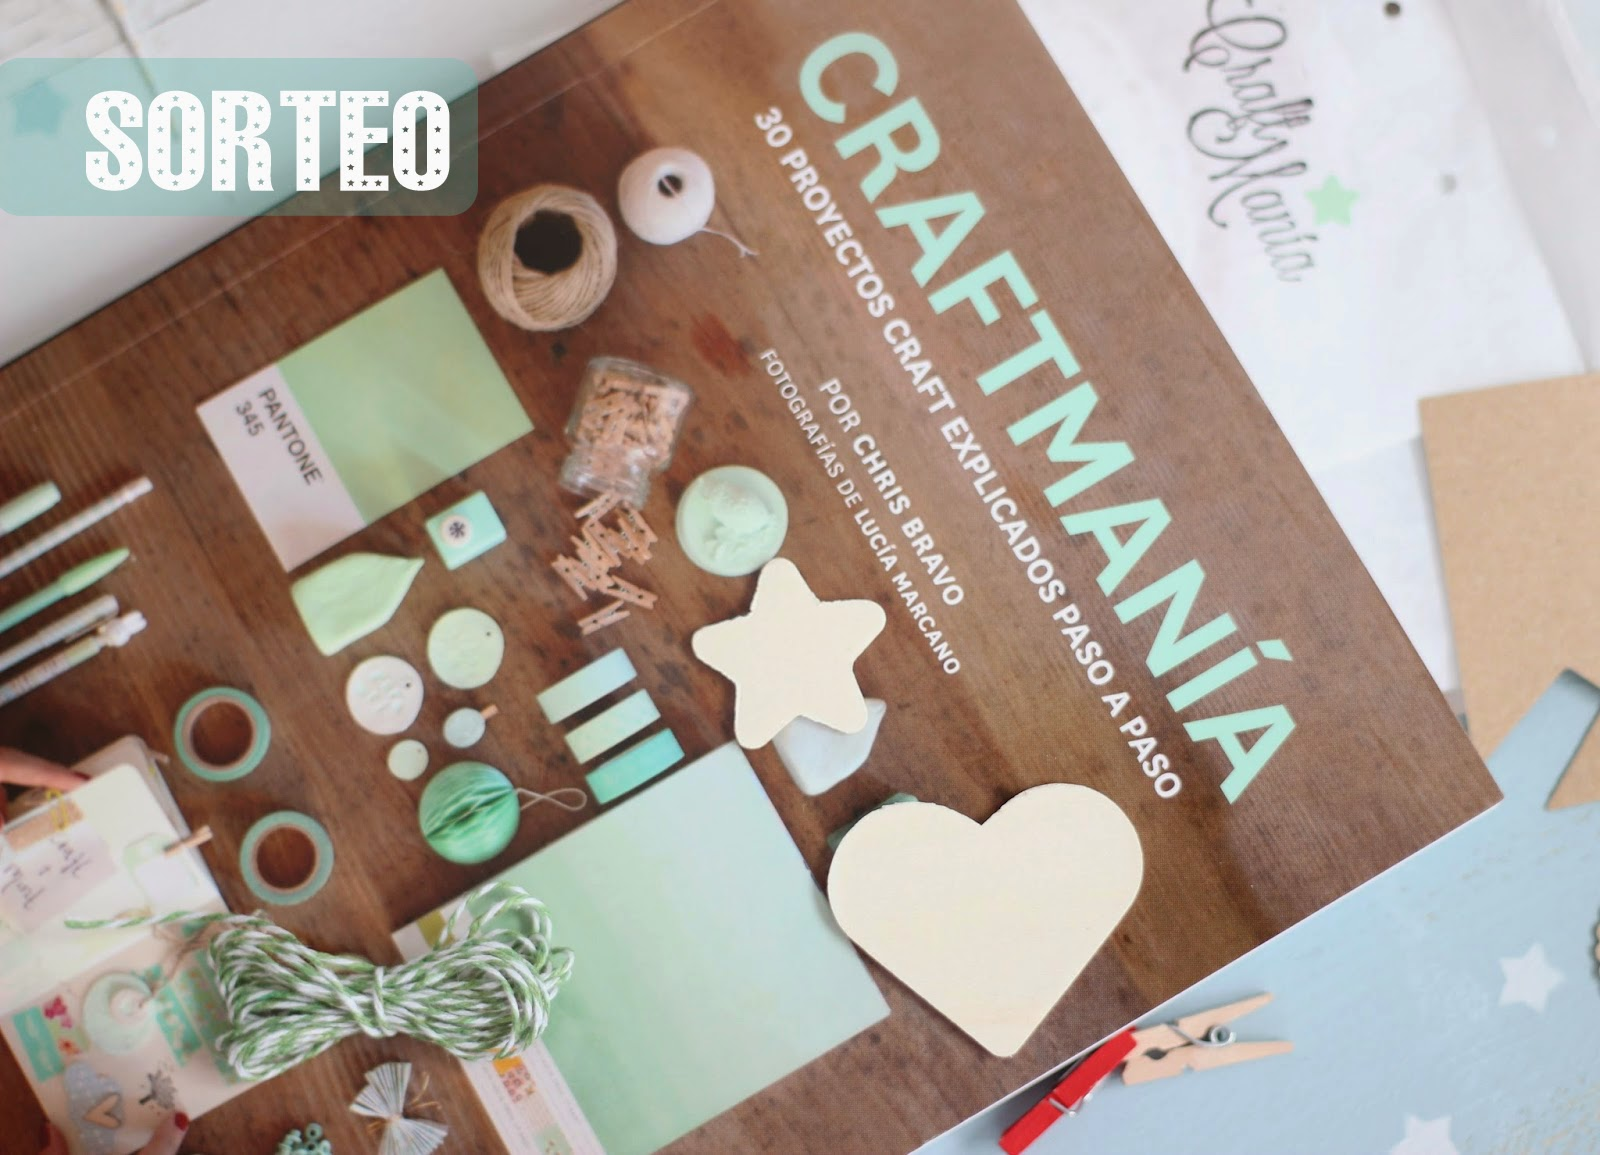 photo-libro-craftmania-chris-bravo-manualidades-diy